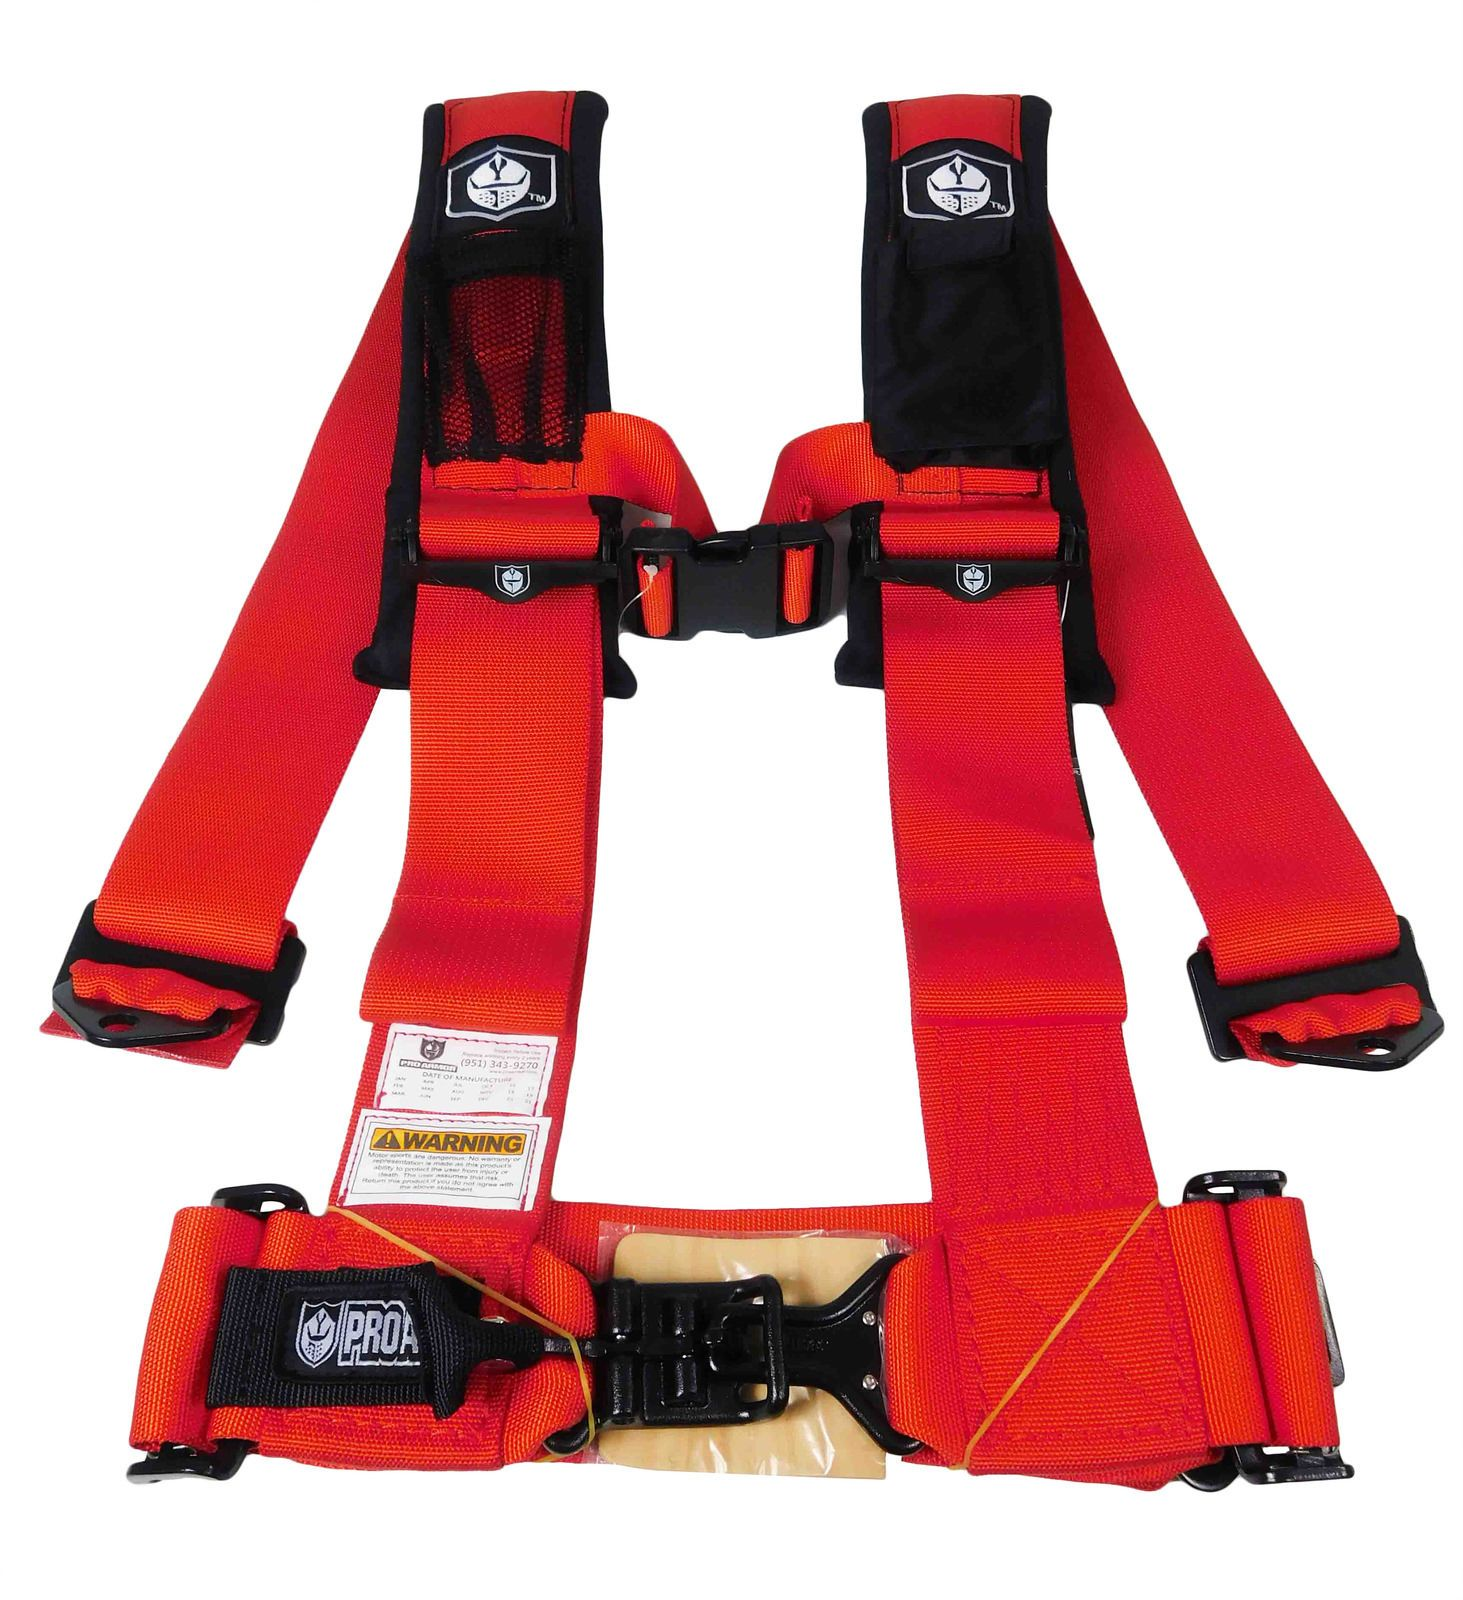 Pro-Armor-A114230RD-x2-P151100-4-Point-3inch-Harness-w-Override-Clip-Red-2-PACK-image-2